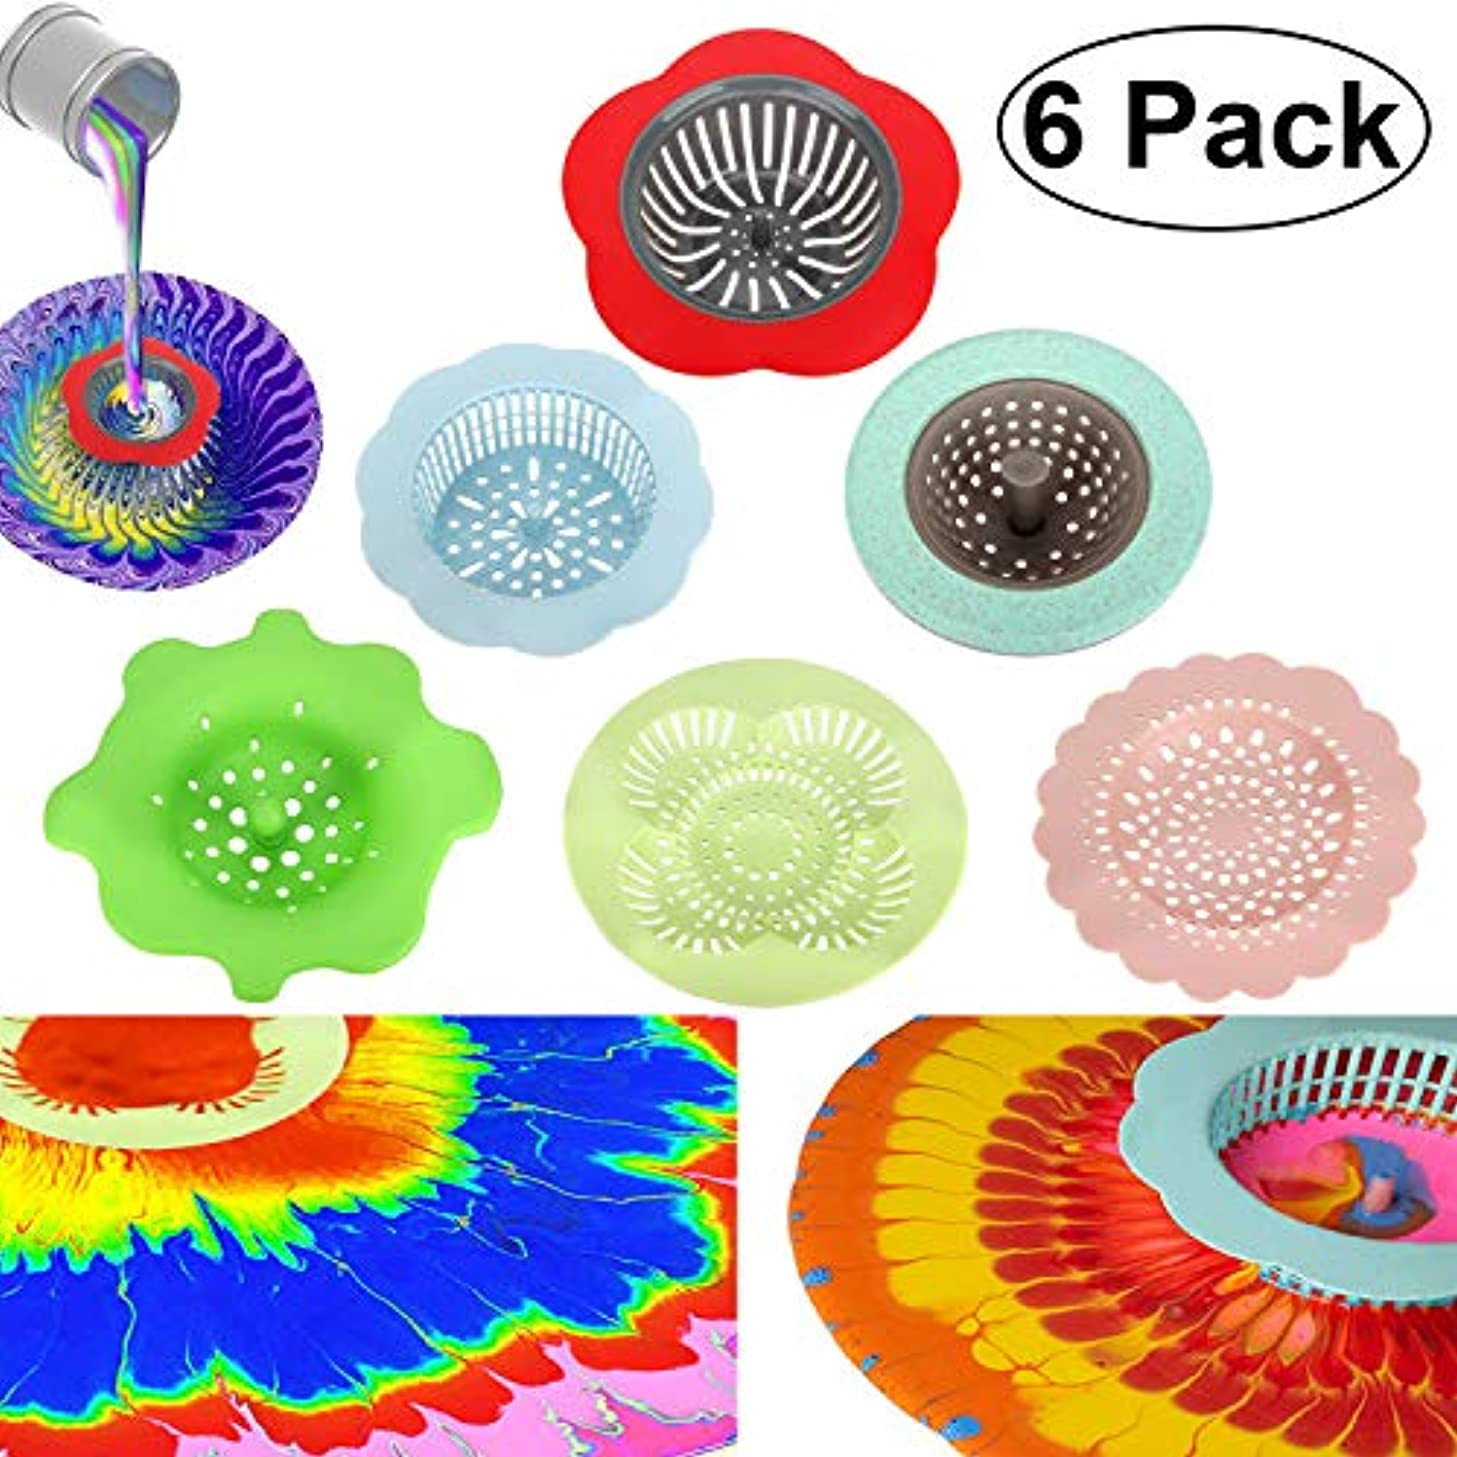 Colovis Acrylic Pouring Strainers with 6 Different Types, Plastic Silicone Acrylic Pouring Art Supplies for Acrylic Pouring Art Workers DIY Unique Original Artwork